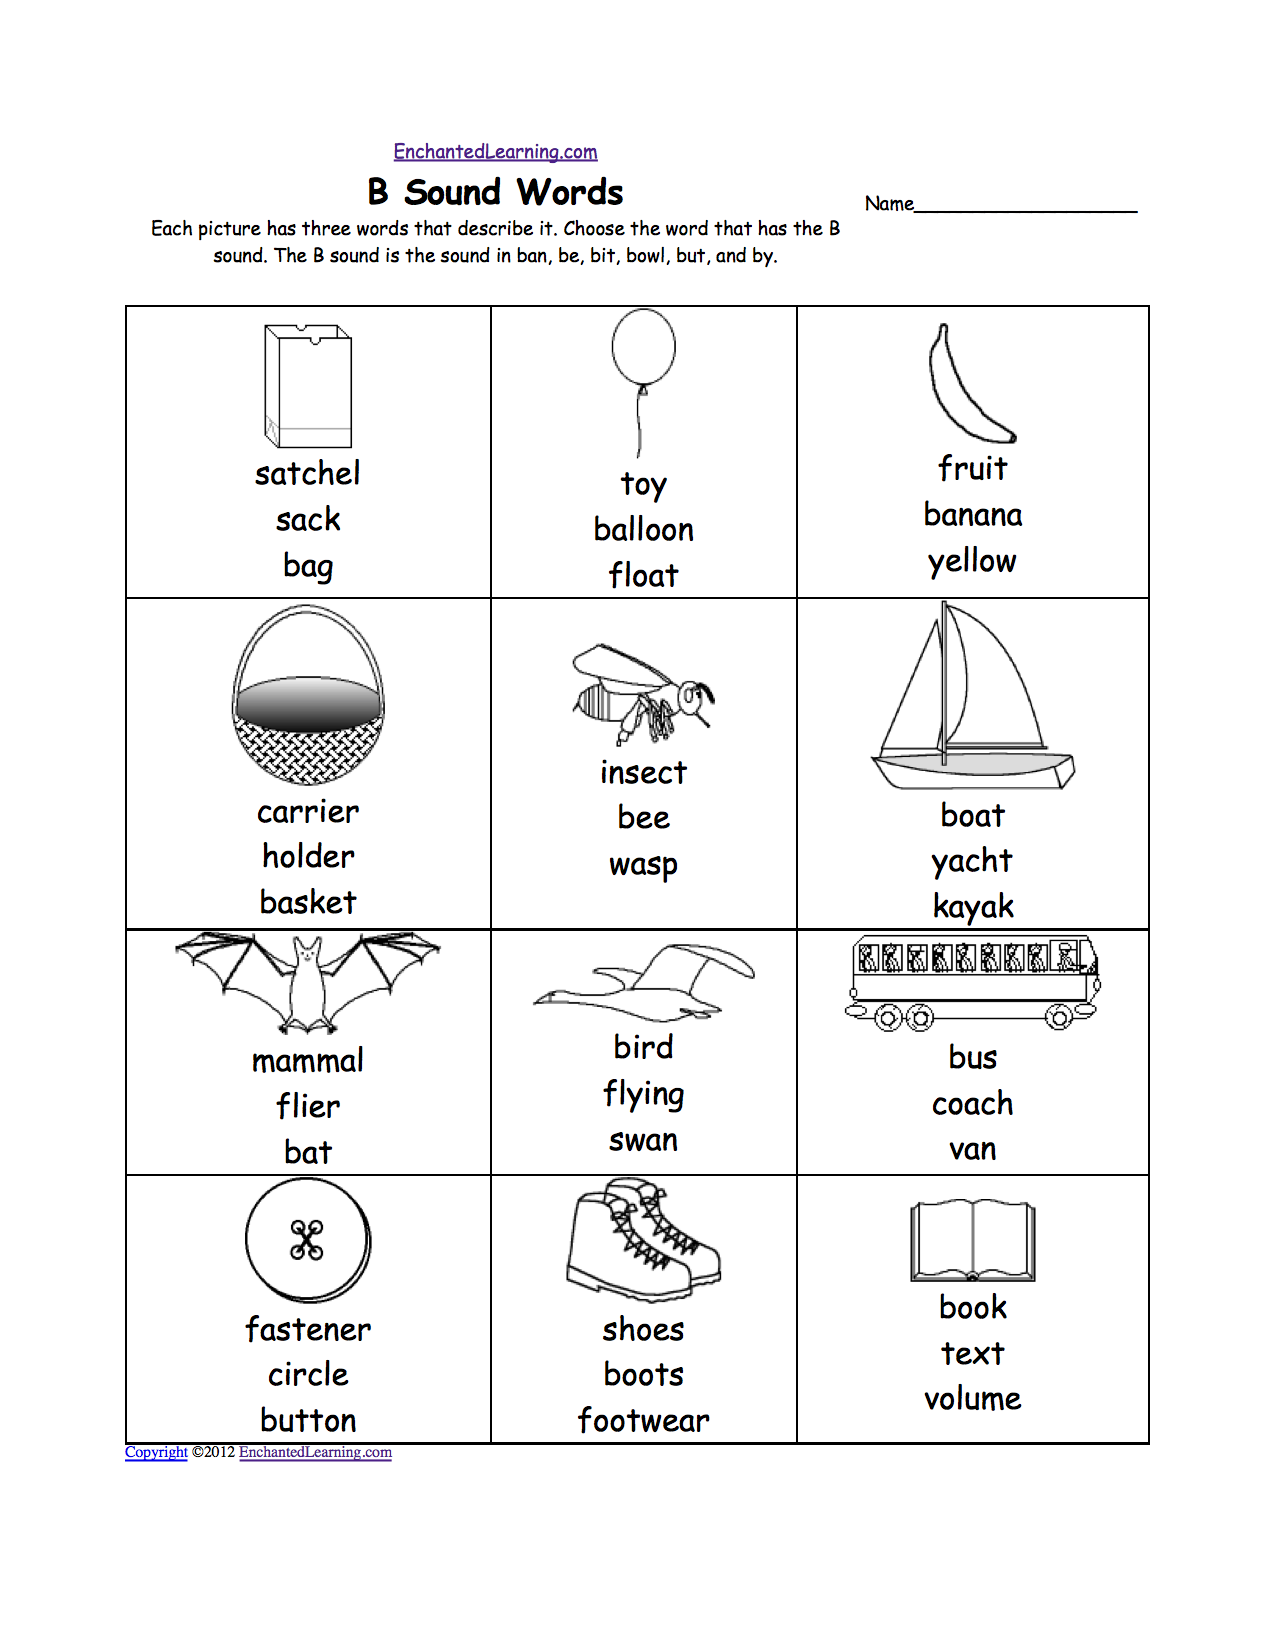 Weirdmailus  Mesmerizing Phonics Worksheets Multiple Choice Worksheets To Print  With Exquisite Quotbquot Sound Phonics Worksheet Multiple Choice Each Picture Has Three Words That Describe It Choose The Word That Has A Quotbquot Sound The Quotbquot Sound Is The Sound  With Nice Multiplication Worksheets Math Drills Also Expanding Numbers Worksheet In Addition X And Y Intercept Worksheets And Free Kindergarten Counting Worksheets As Well As Letter Phonics Worksheets Additionally English Worksheets Ks From Enchantedlearningcom With Weirdmailus  Exquisite Phonics Worksheets Multiple Choice Worksheets To Print  With Nice Quotbquot Sound Phonics Worksheet Multiple Choice Each Picture Has Three Words That Describe It Choose The Word That Has A Quotbquot Sound The Quotbquot Sound Is The Sound  And Mesmerizing Multiplication Worksheets Math Drills Also Expanding Numbers Worksheet In Addition X And Y Intercept Worksheets From Enchantedlearningcom